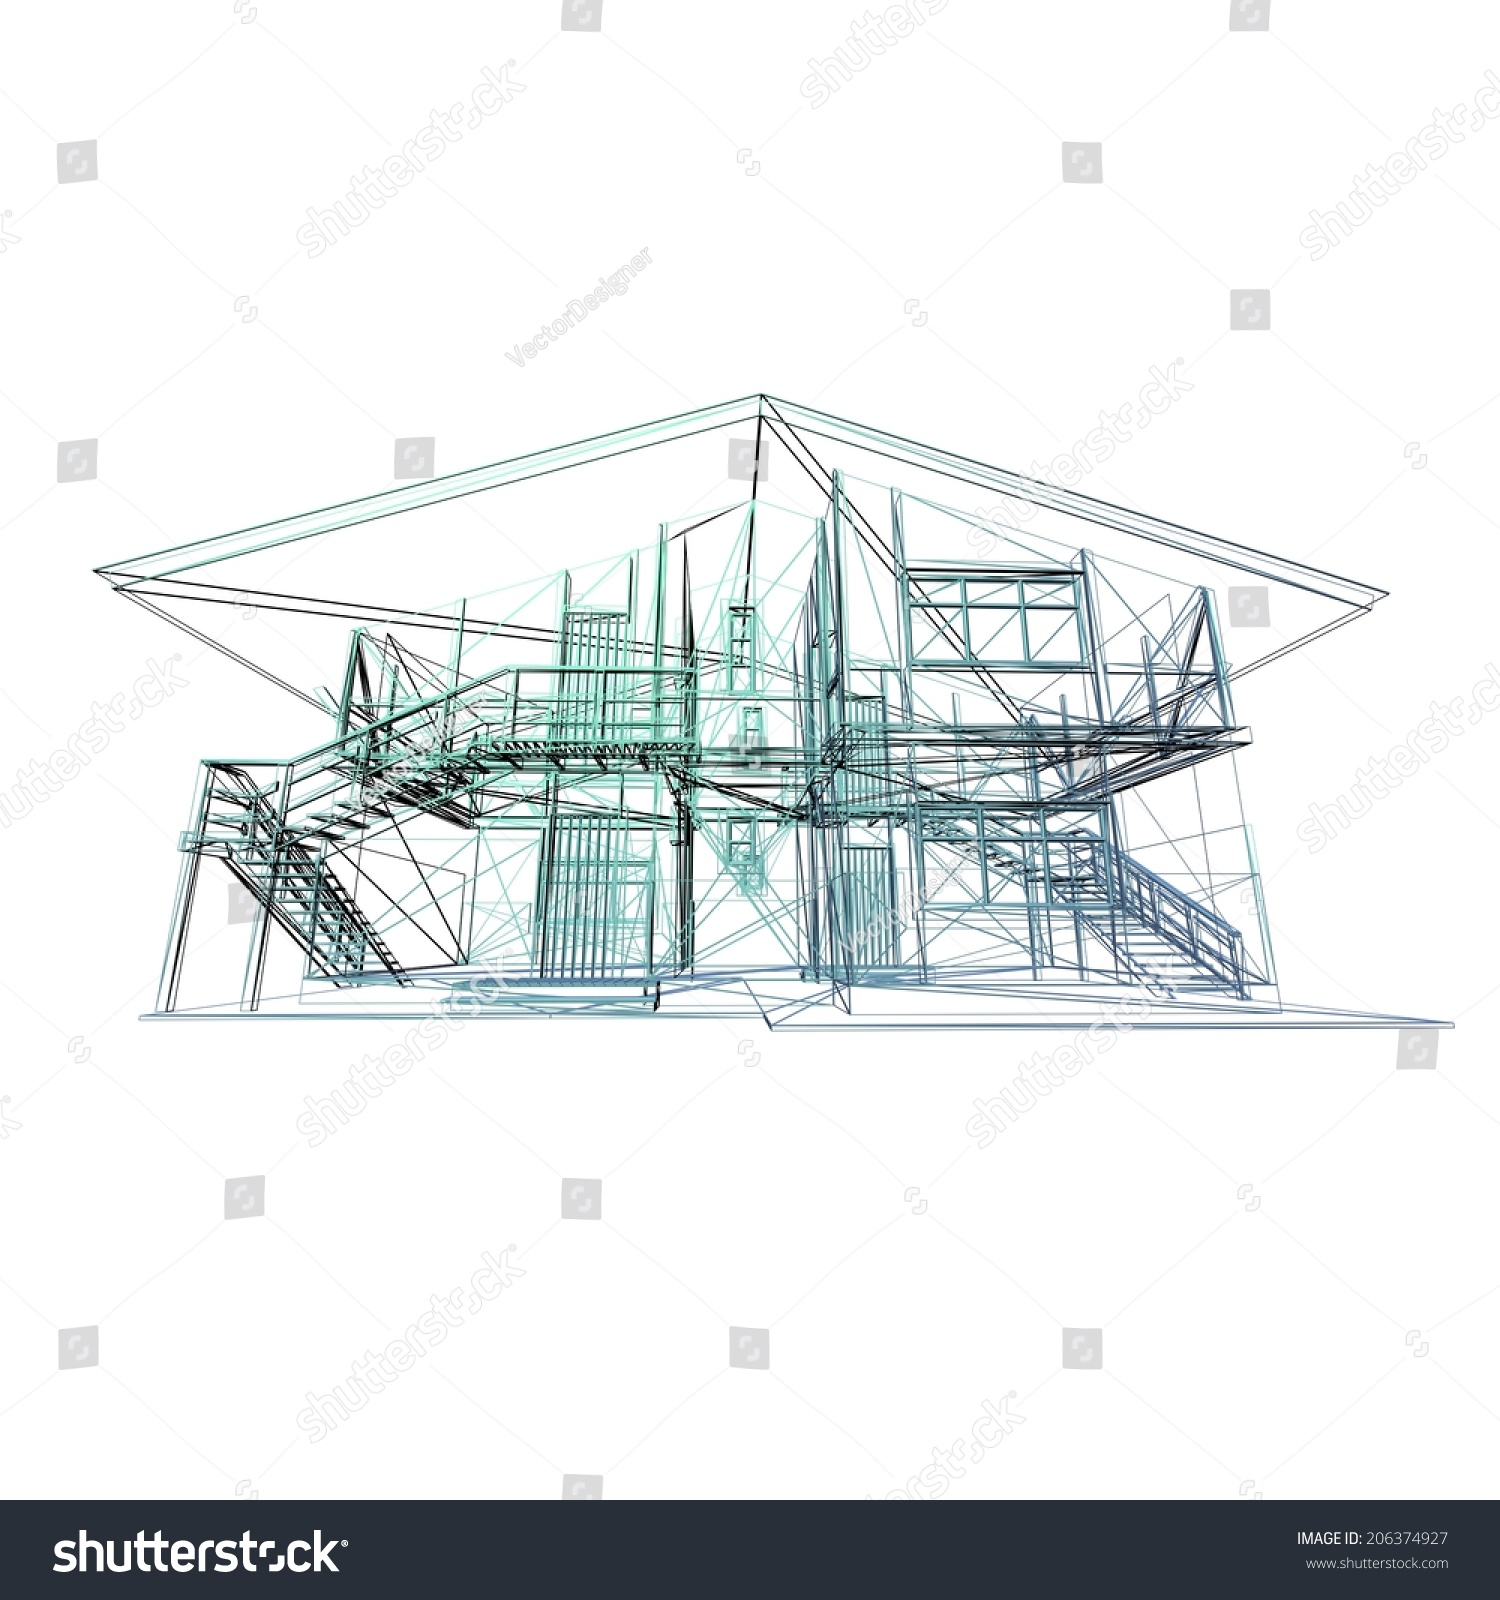 Modern Architecture Concept: Abstract Architectural 3d Construction. Concept